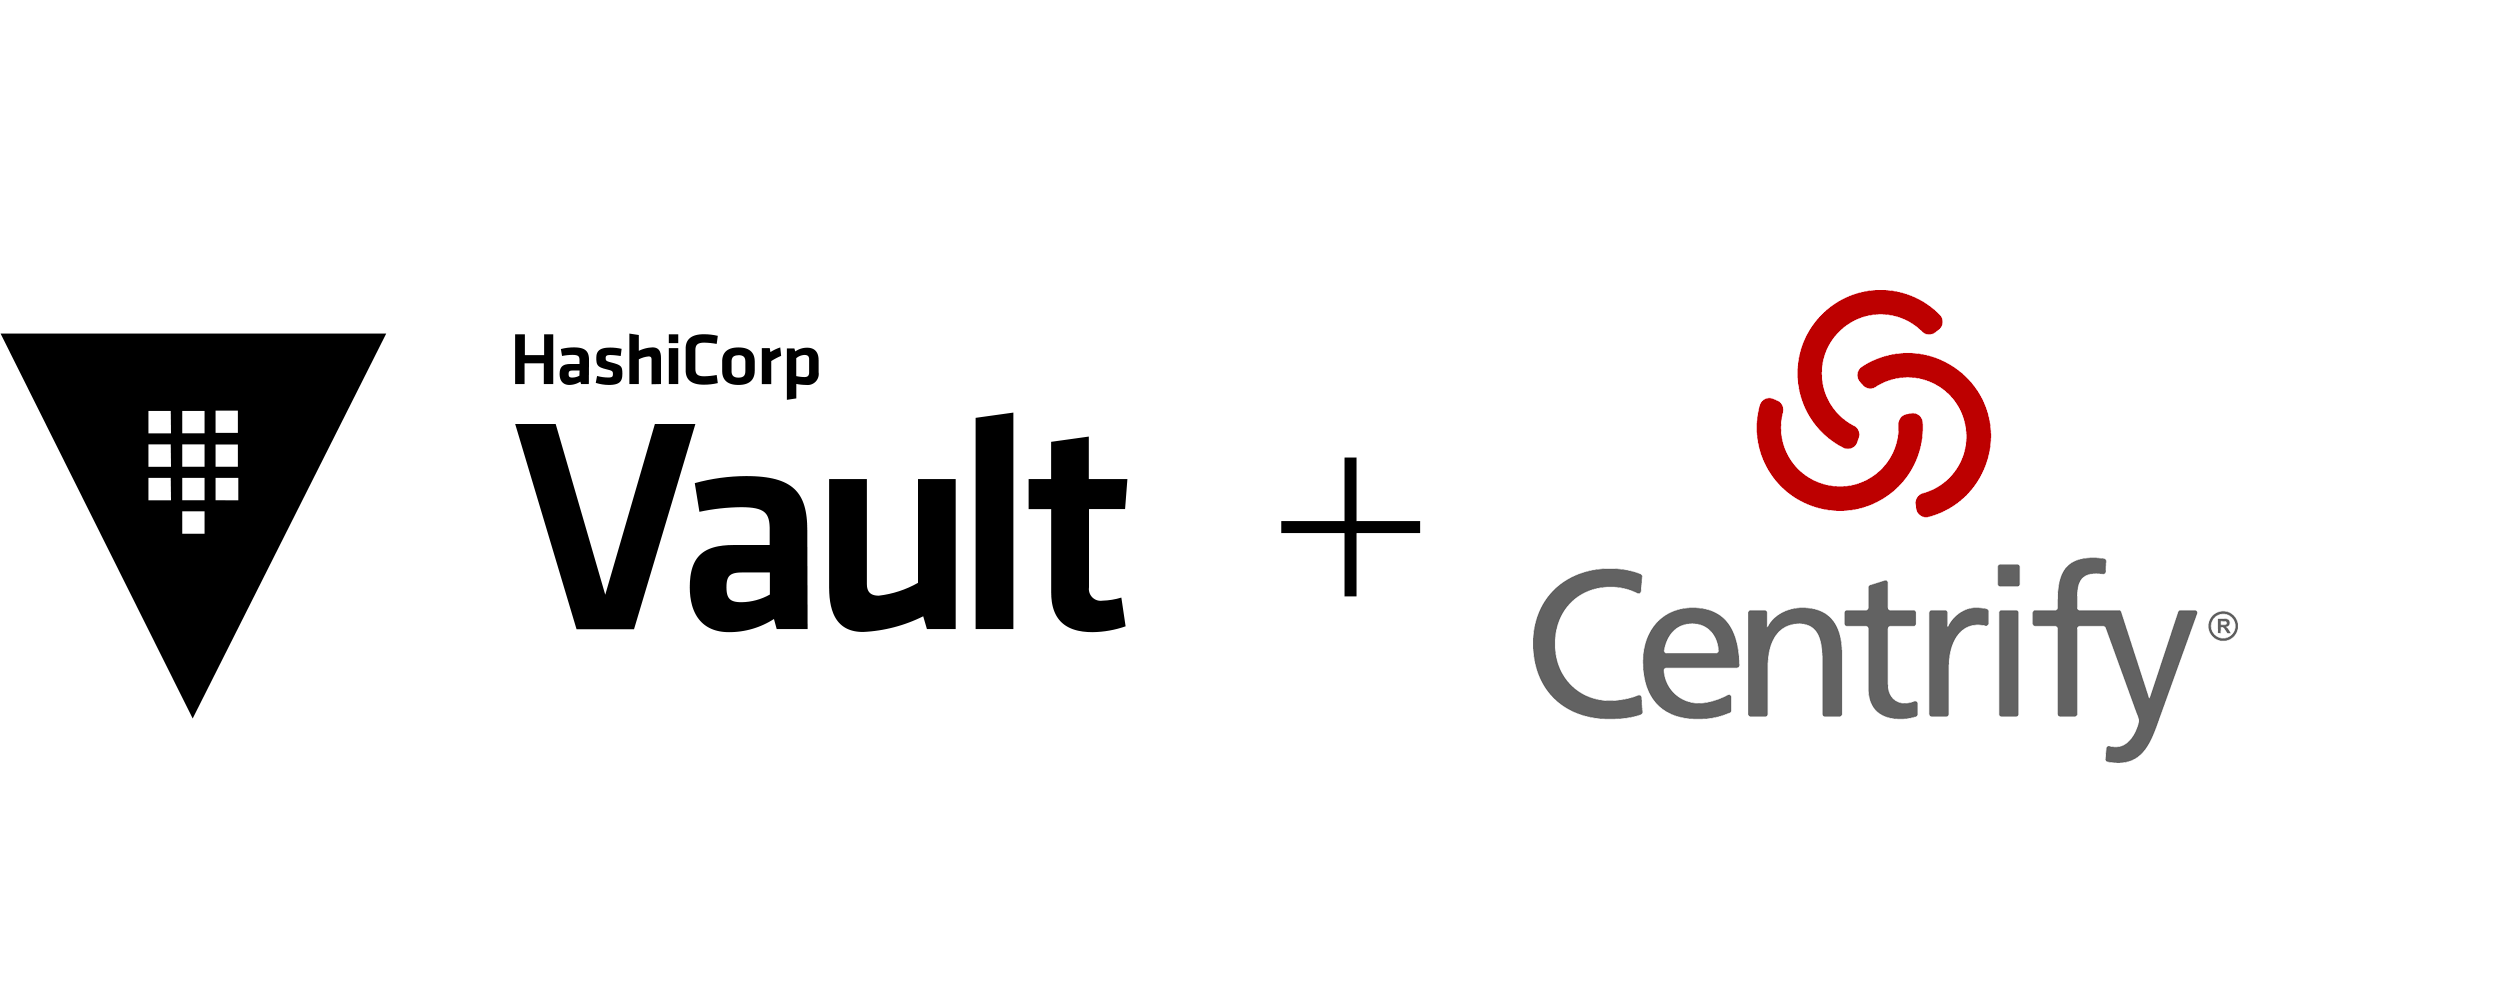 Introducing Centrify Identity Services for HashiCorp Vault